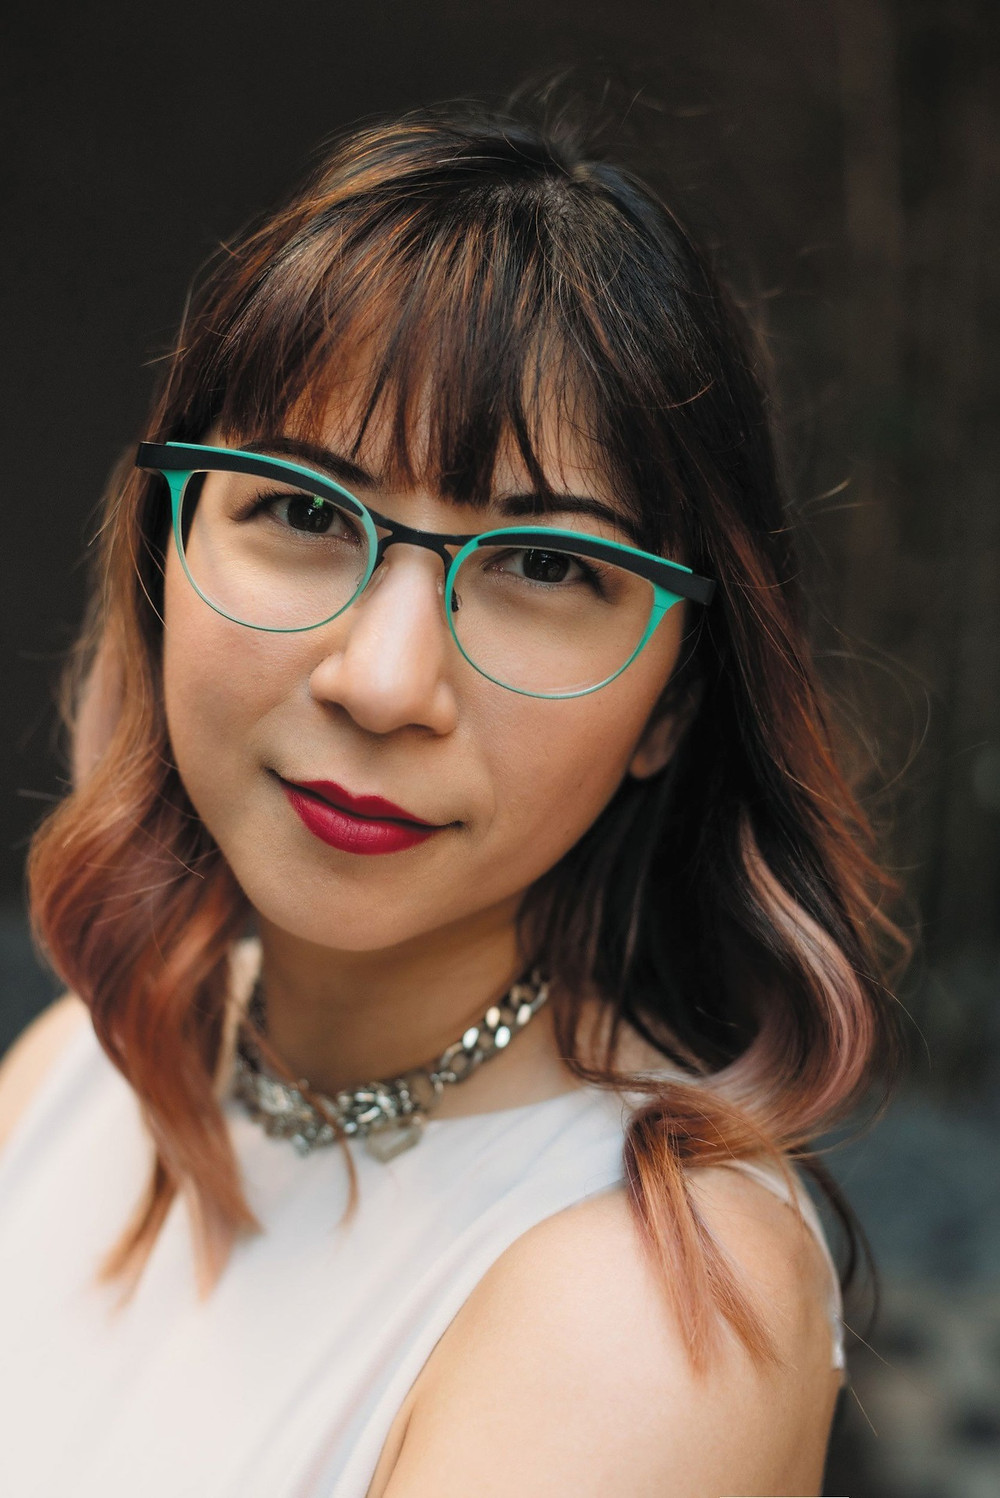 Portrait of a woman looking in camera. Just her head to shoulder area. She has ombre hair, red lipstick, and teal rimmed glasses.